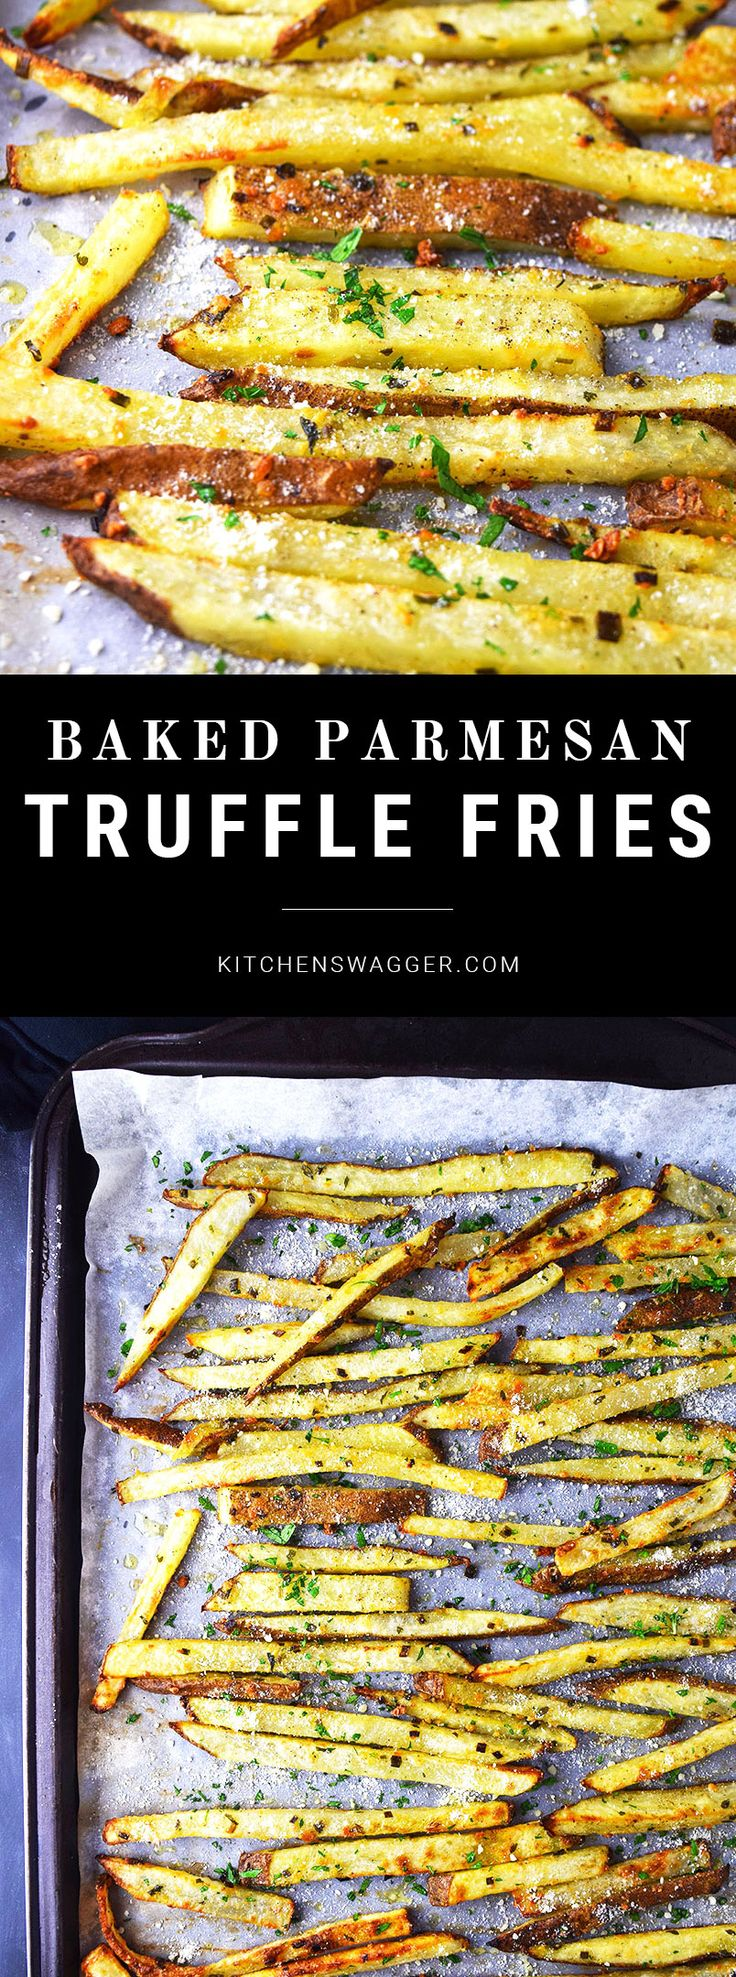 Crispy baked hand cut fries made with truffle oil, spices, and parmesan cheese.